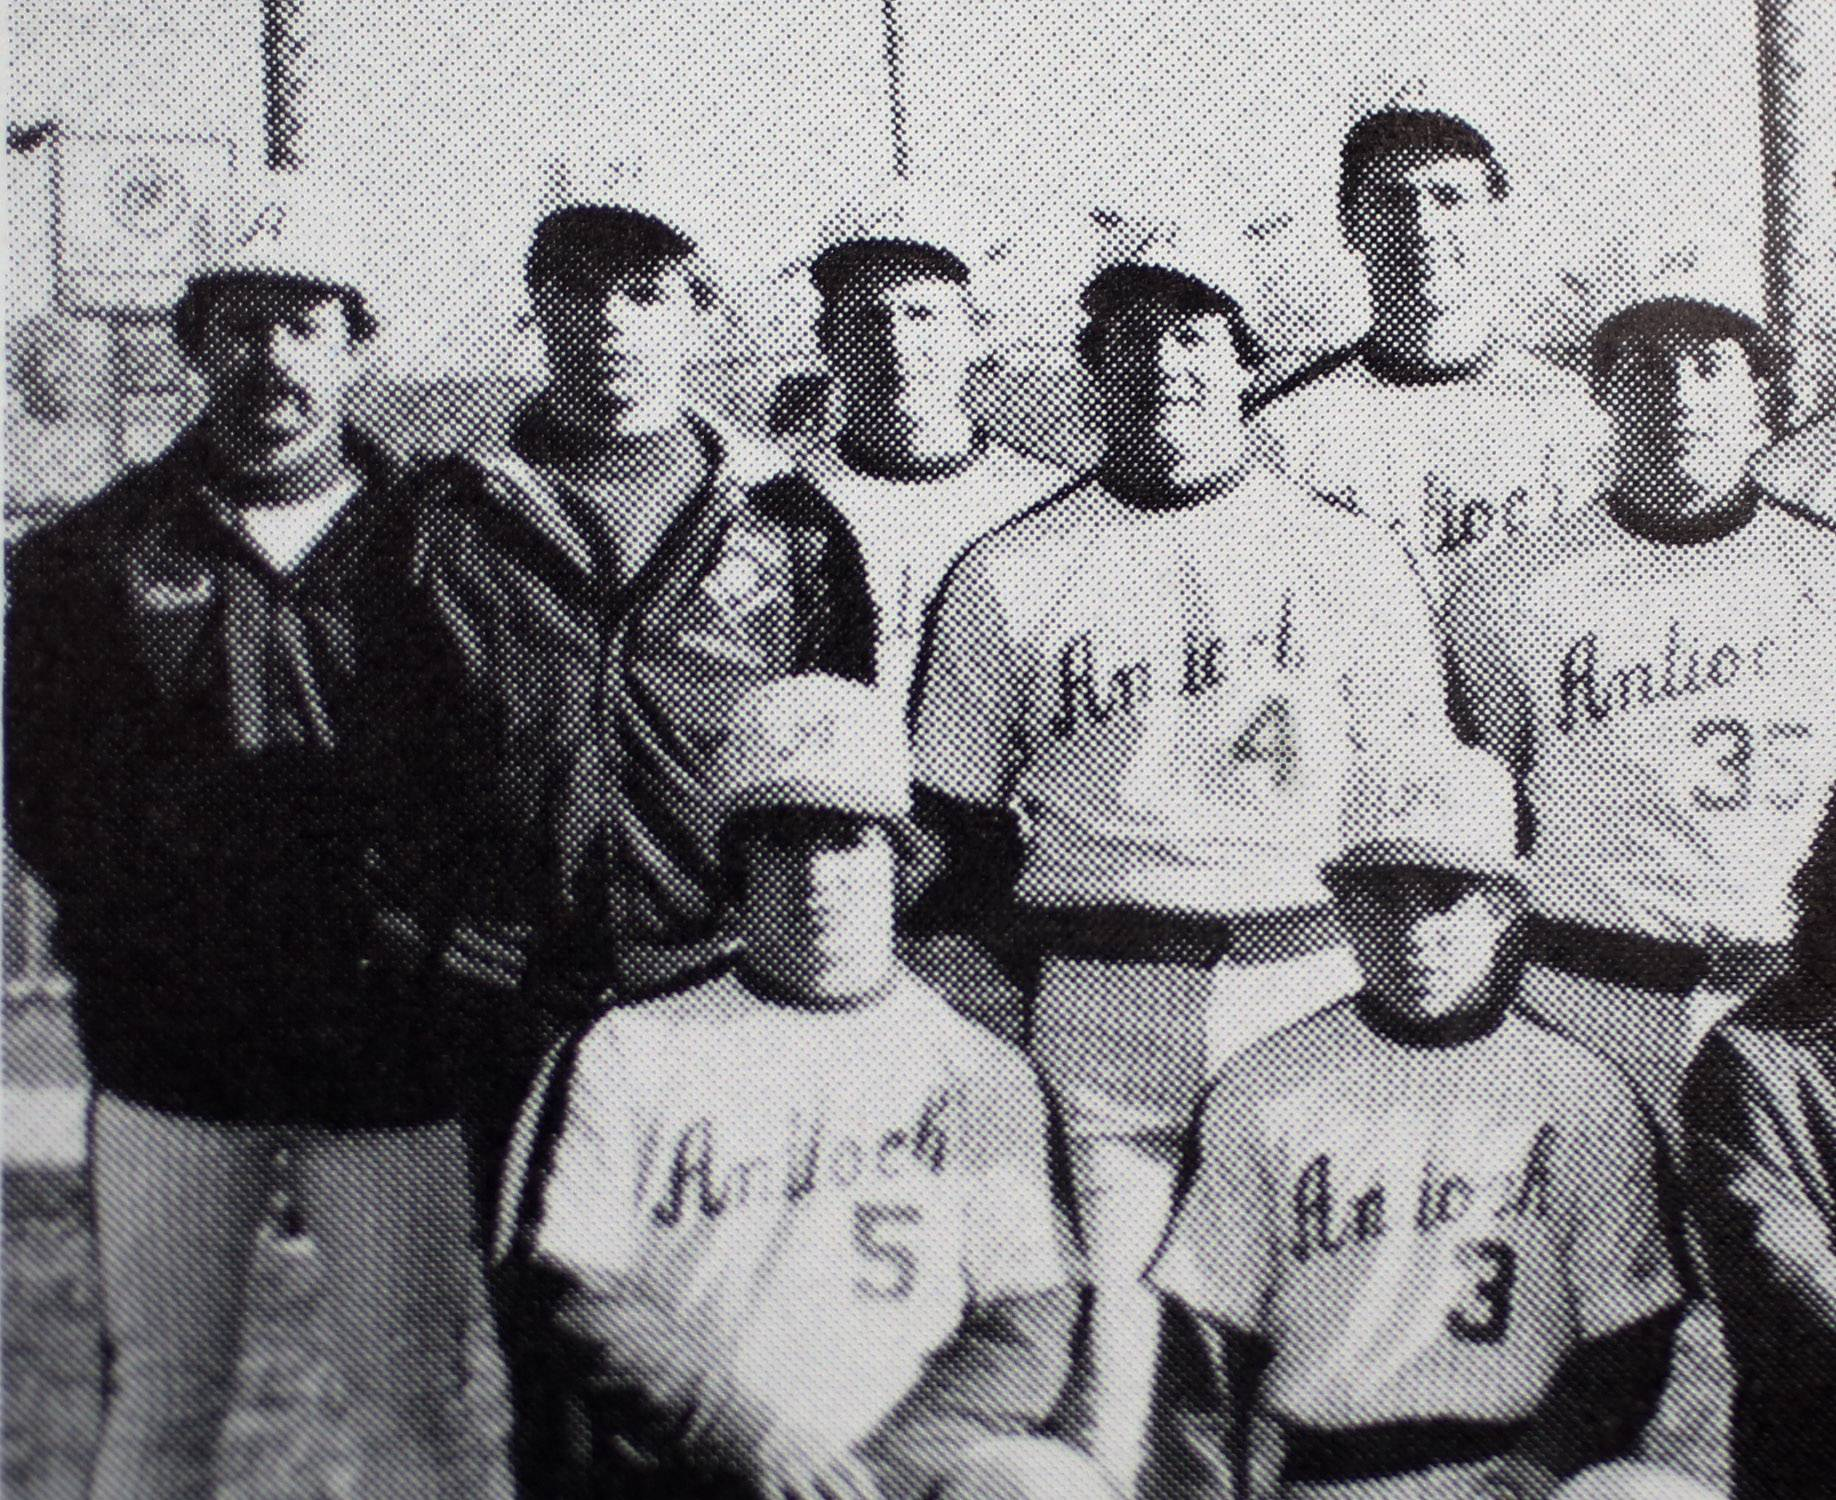 Gilbert R. Boucher II/gboucher@dailyherald.comA team picture of Craig Prather (4) and coach Paul Petty, far left, on the baseball team at Antioch. Prather's son Collin currently plays baseball for Petty at Antioch.